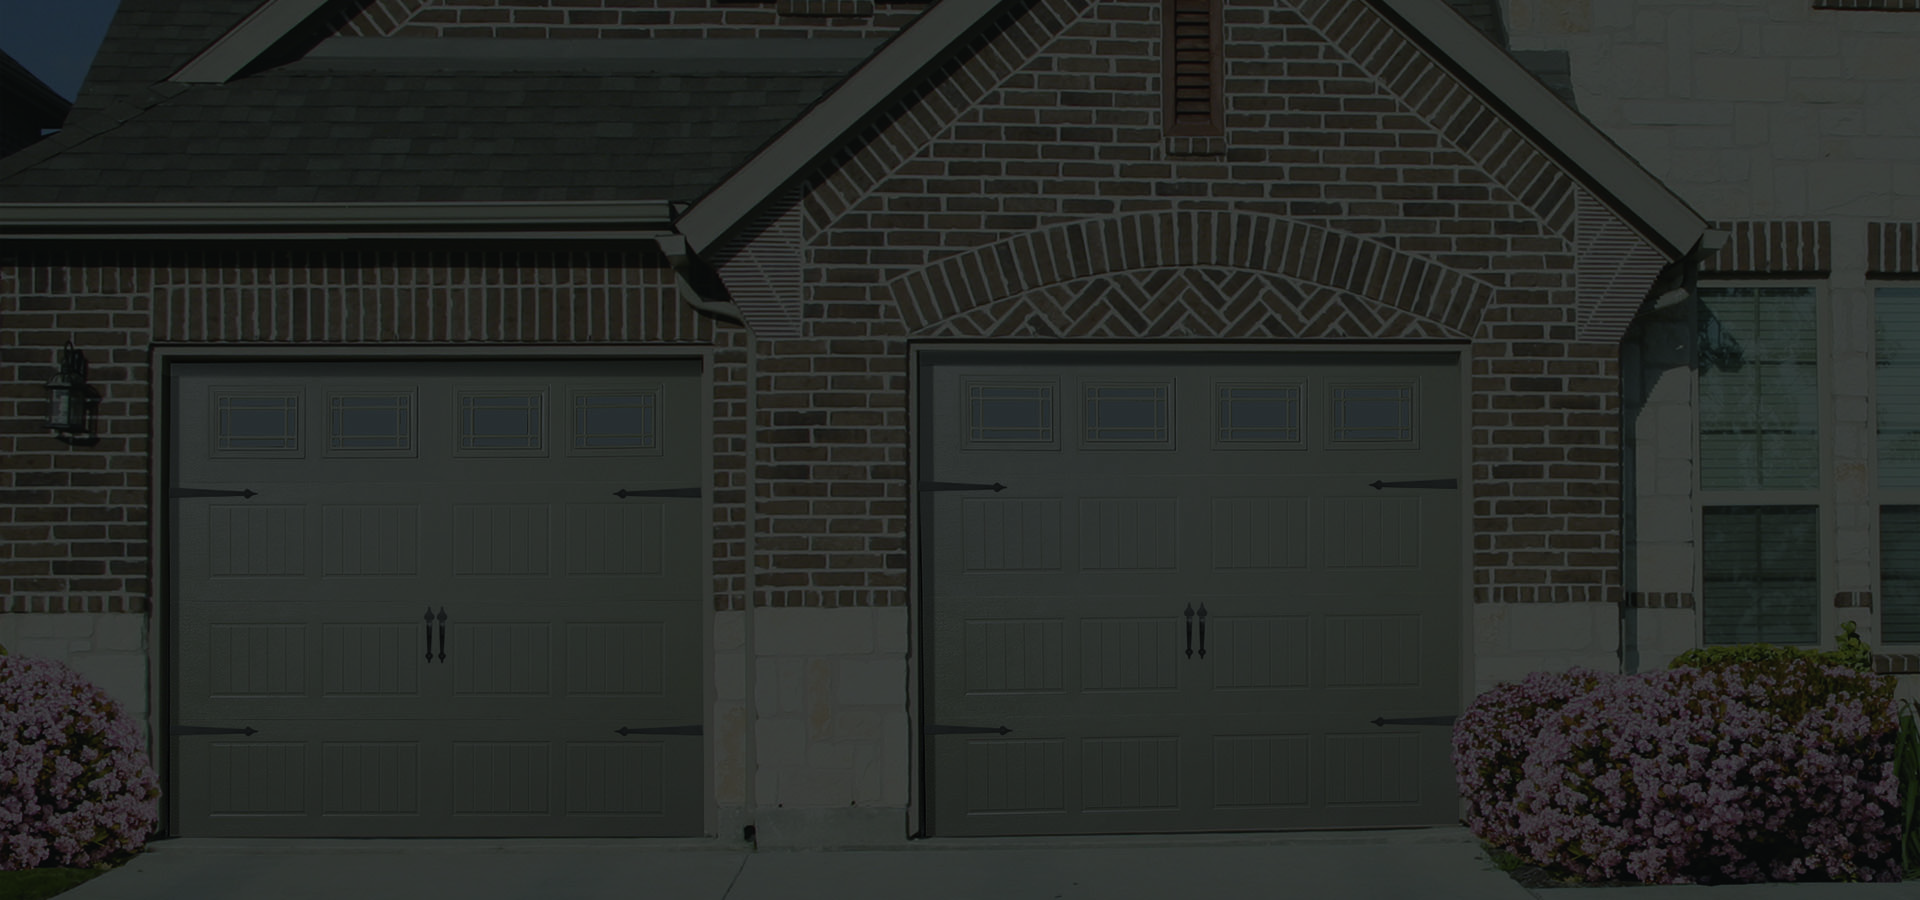 <div class='gallery-tags'><h3 class='comp-tag'>Leaders in Garage Door<br>Installations &amp; Services.</h3><div class='split'><p class='comp-tag'><b>Overhead Door Company of Gainesville</b><p class='comp-tag'>Phone: <a href='tel:3524682733'>352-468-2733</a><p class='comp-tag alignment1'>Serving: Alachua, Gilchrist, Suwannee, <br> Columbia, Union, Bradford &amp; <br>Putnam Counties</div><div class='split'><p class='comp-tag'><b>Overhead Door Company of Ocala</b><p class='comp-tag'>Phone: <a href='tel:3526225737'>352-622-5737</a><p class='comp-tag alignment1'>Serving: Marion, Sumter, Citrus & Levy Counties</div></div>